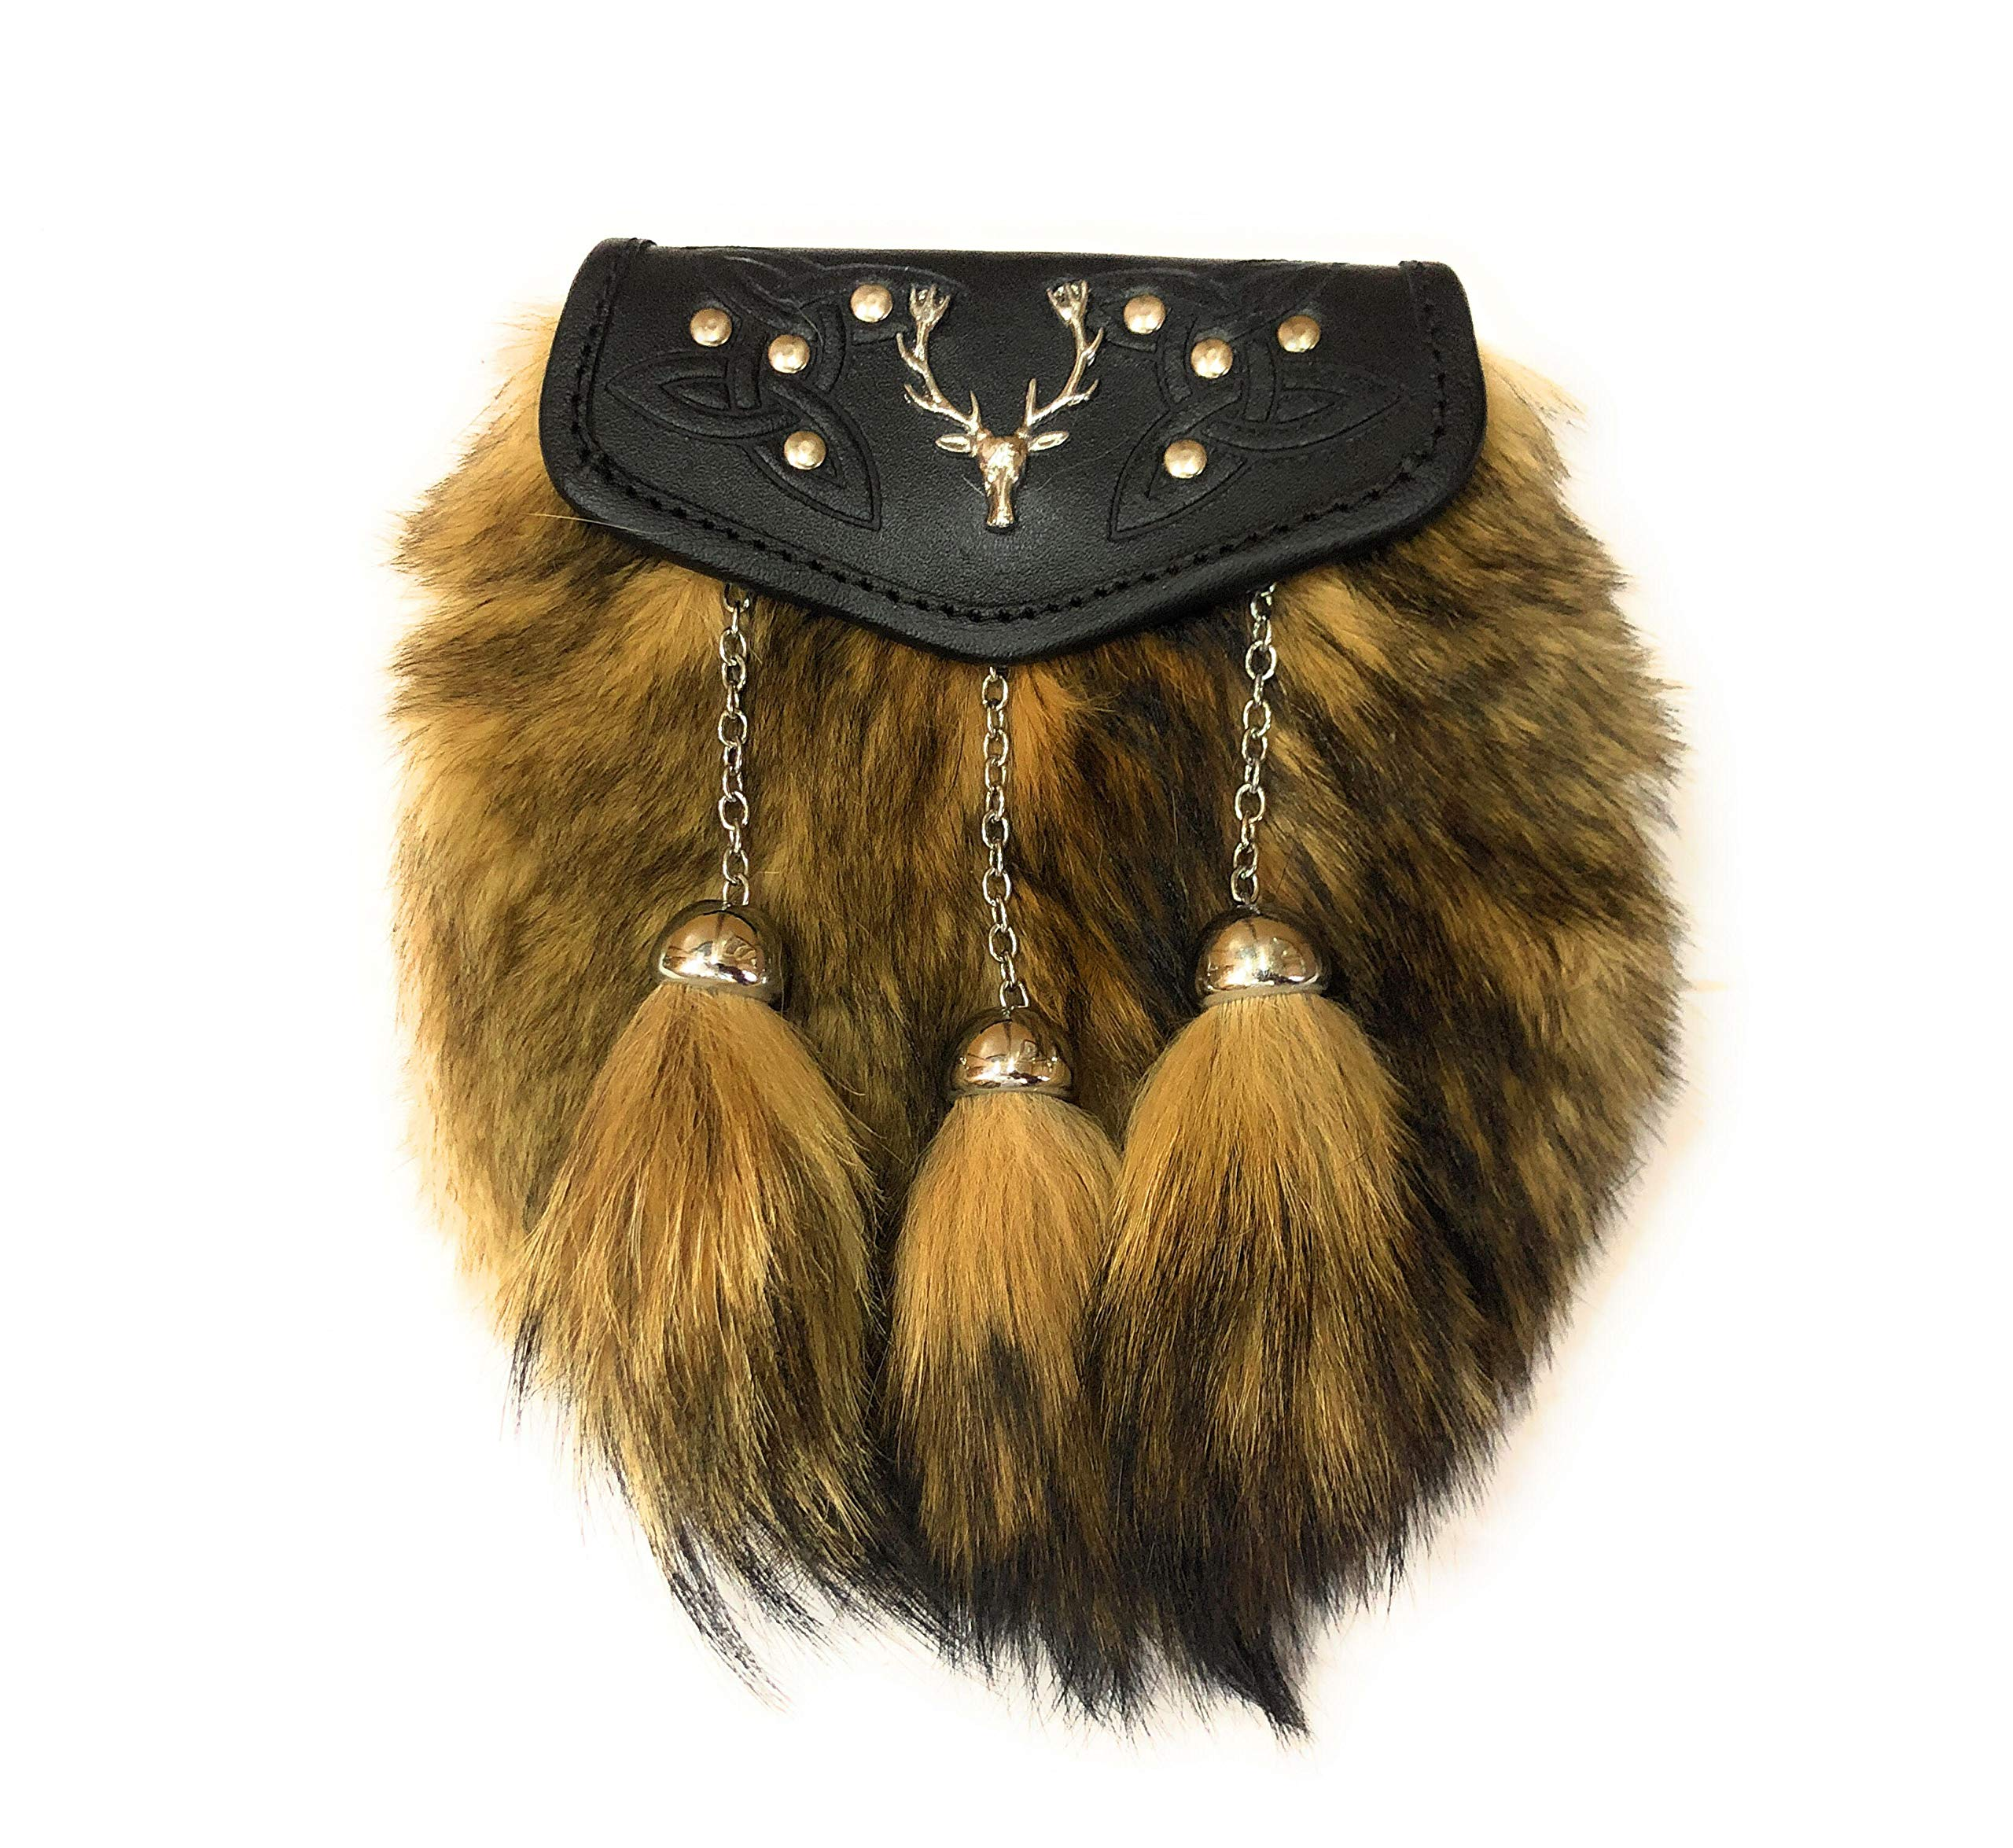 Genuine Coyote Fur Kilt Sporran with Stag Badge on Leather Flap Black by KSUC SUPPLIES